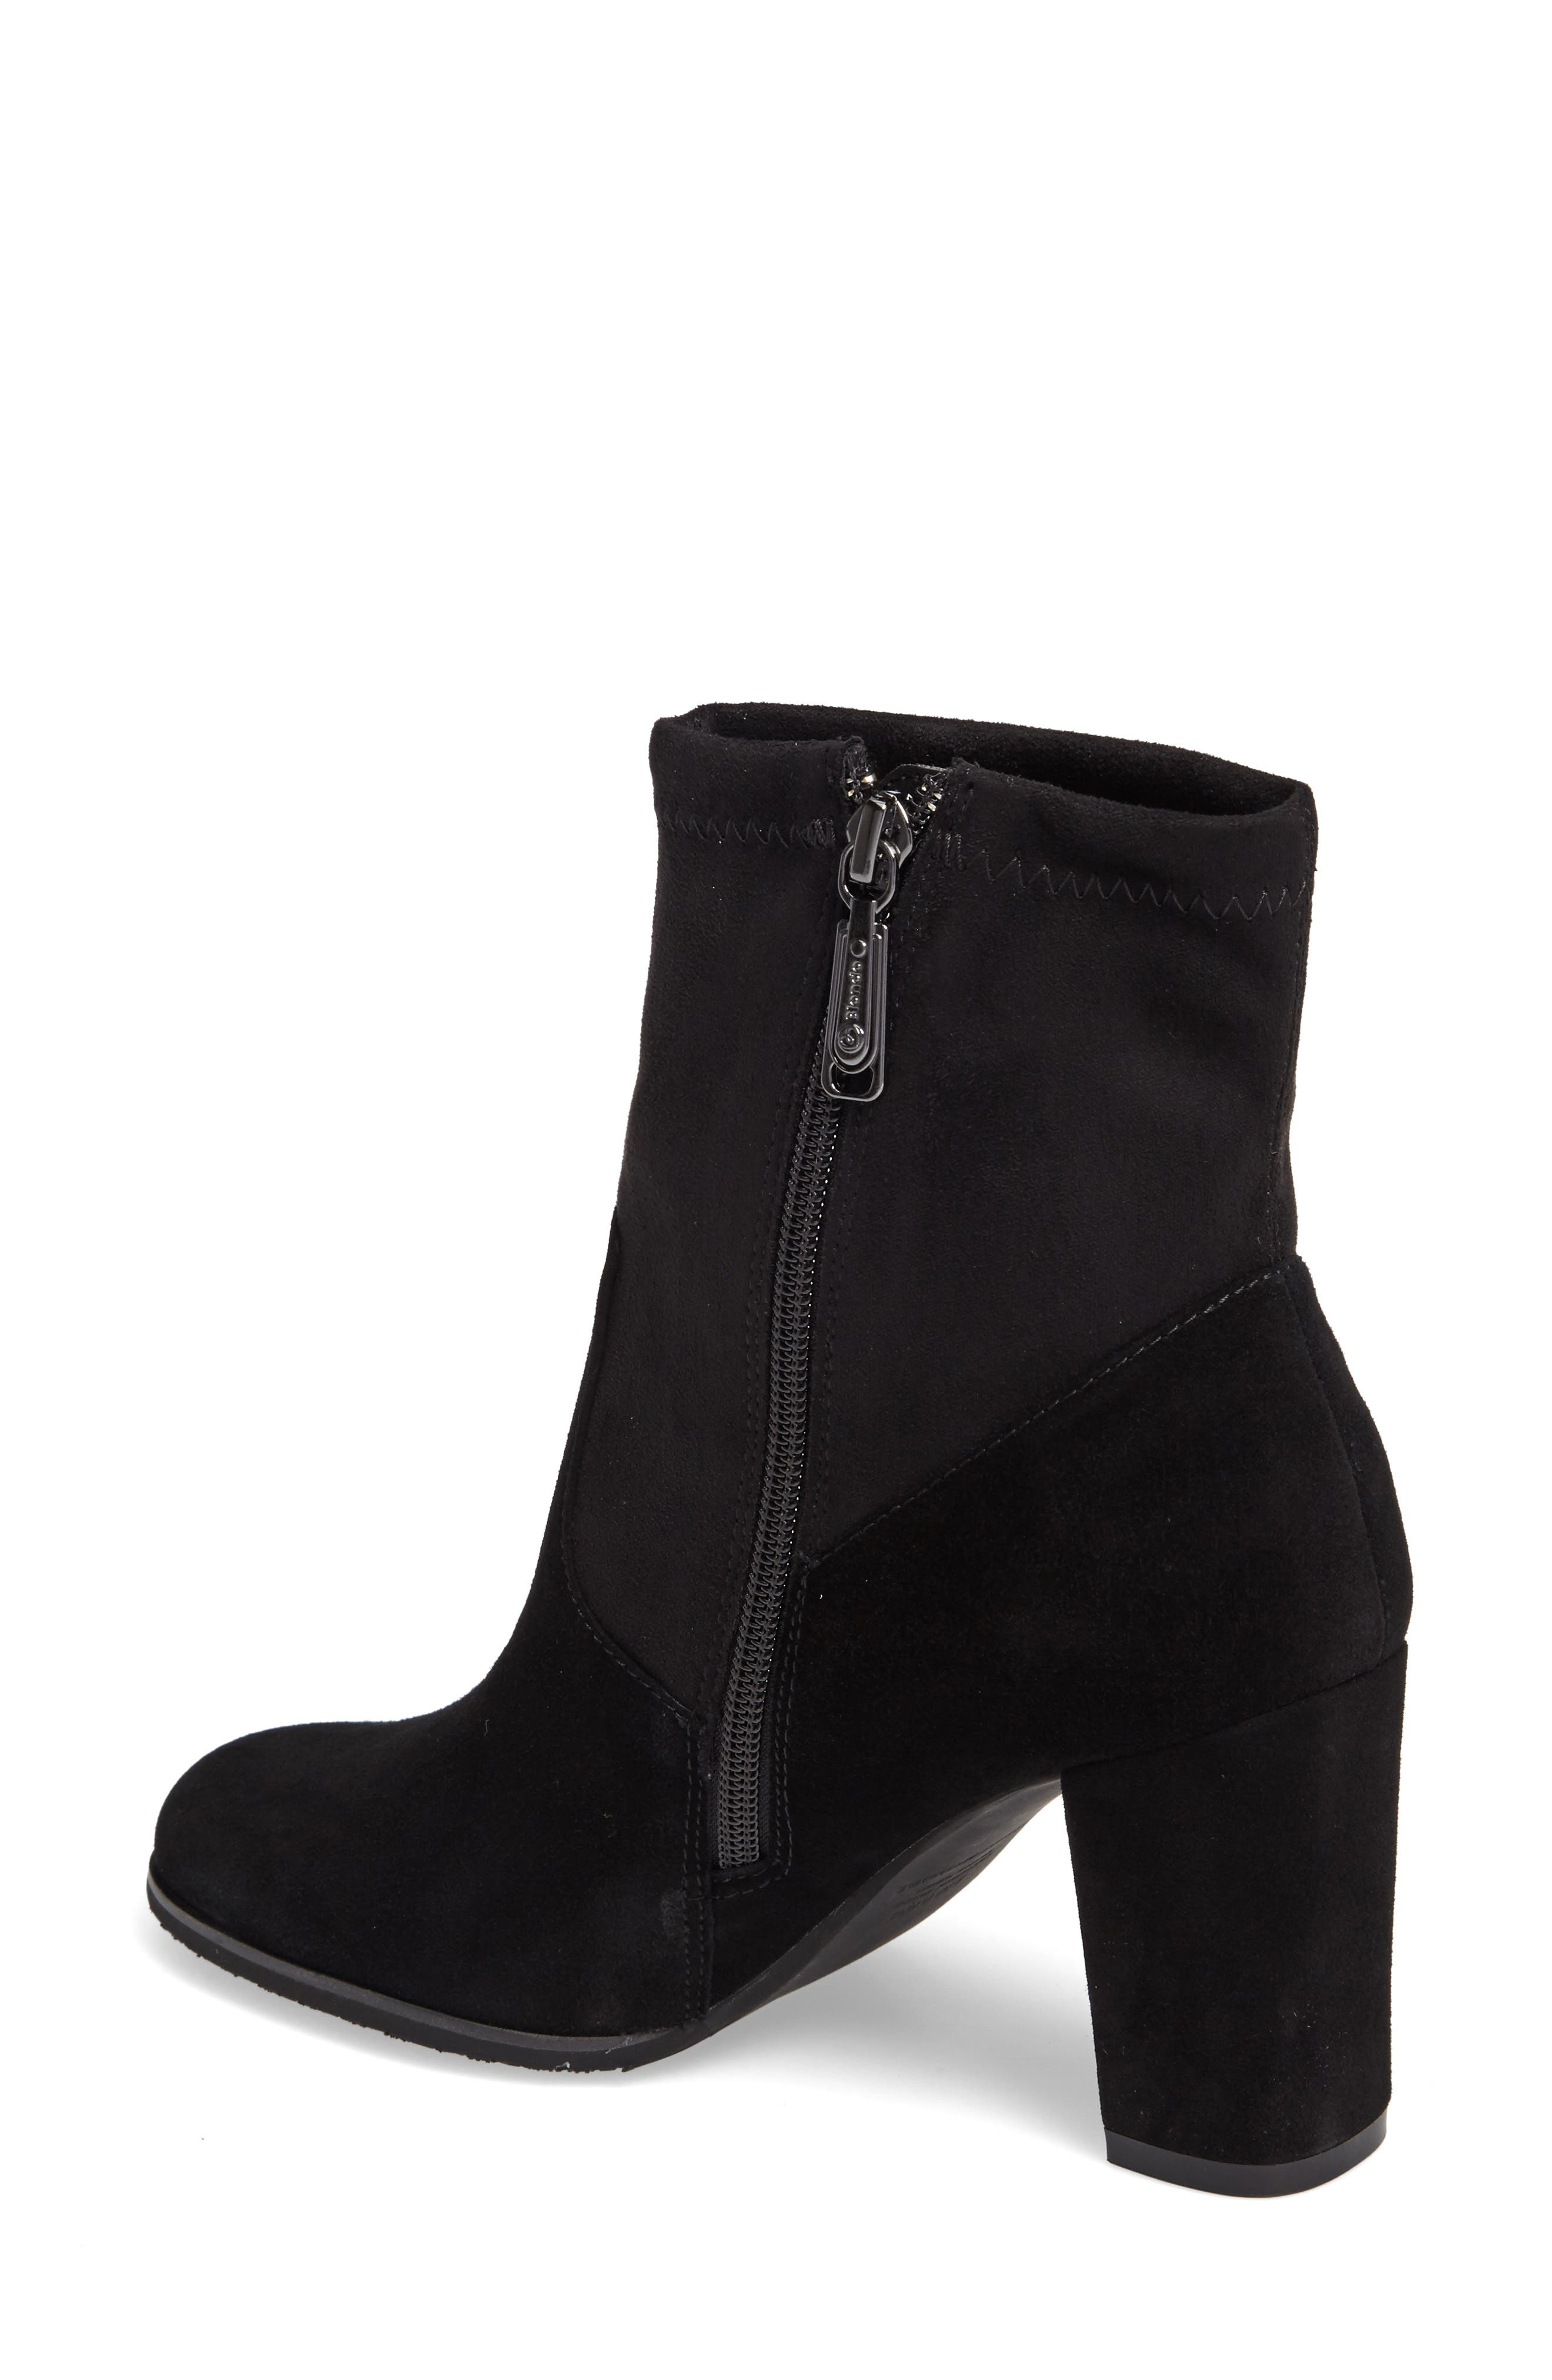 Kelly Waterproof Bootie,                             Alternate thumbnail 2, color,                             006